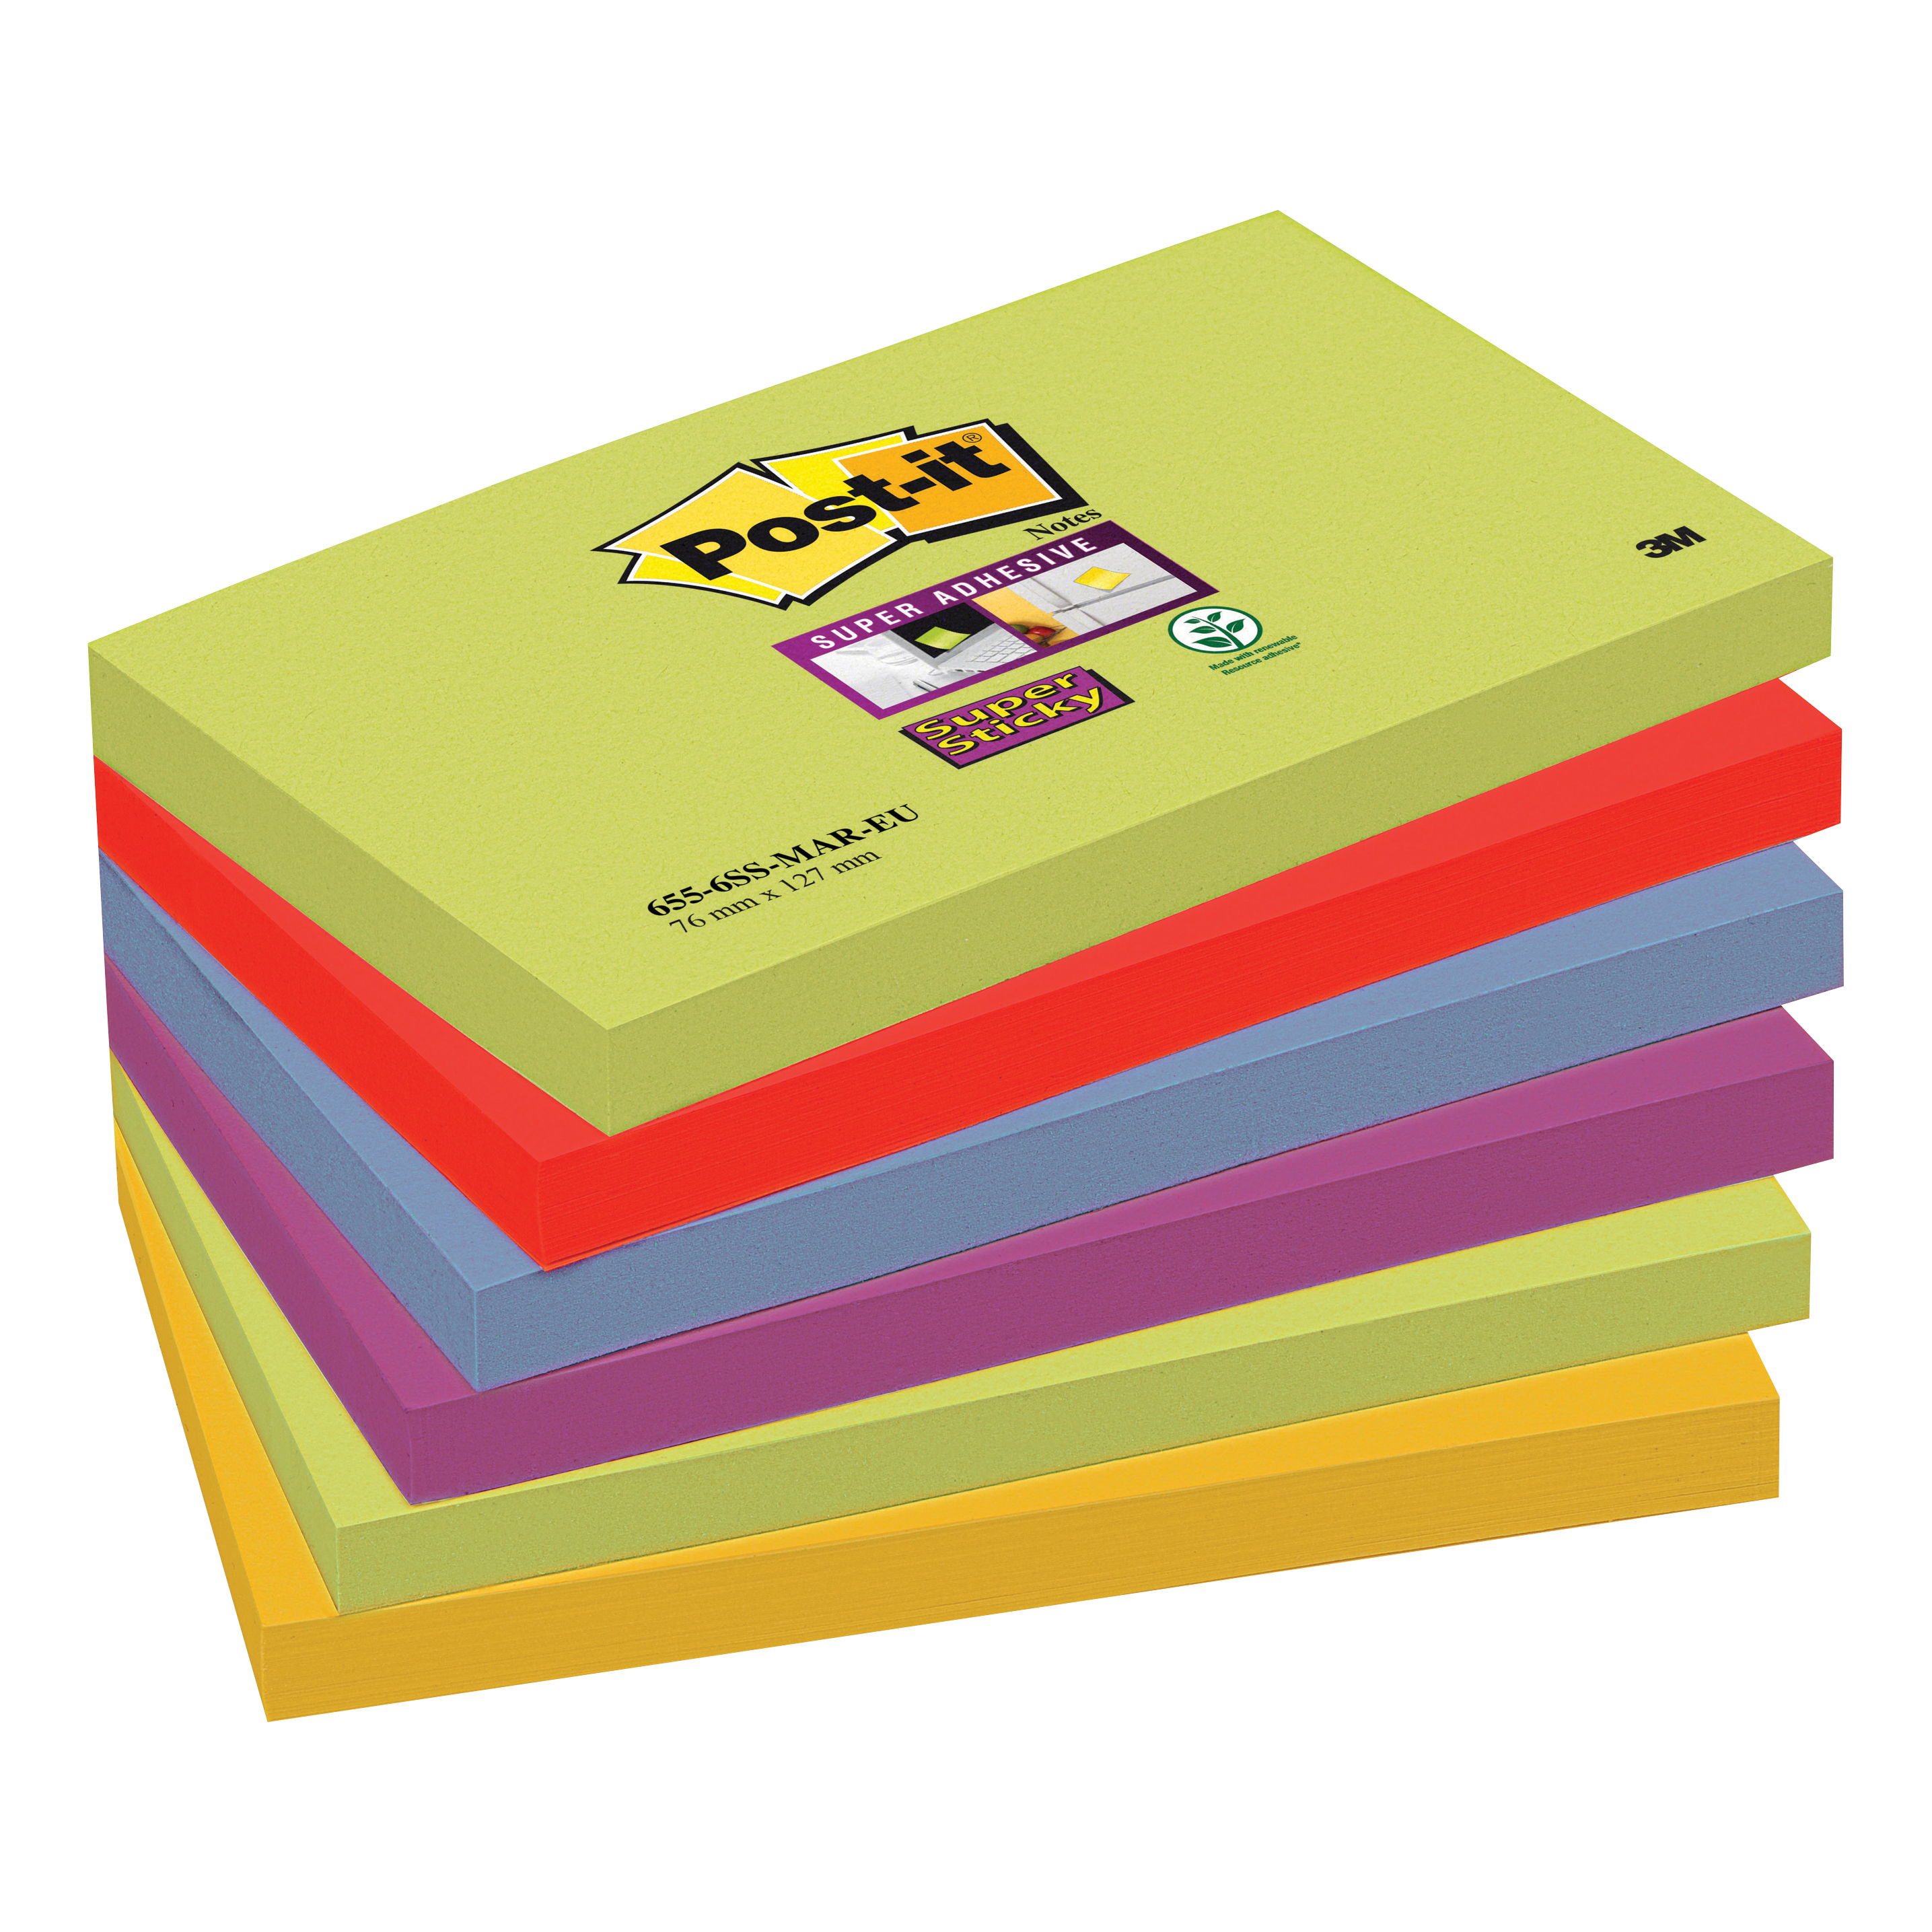 Post-it Super Sticky Removable Notes Pad 90 Sheets 76x127mm Marrakesh Ref 655-6SS-MAR Pack 6